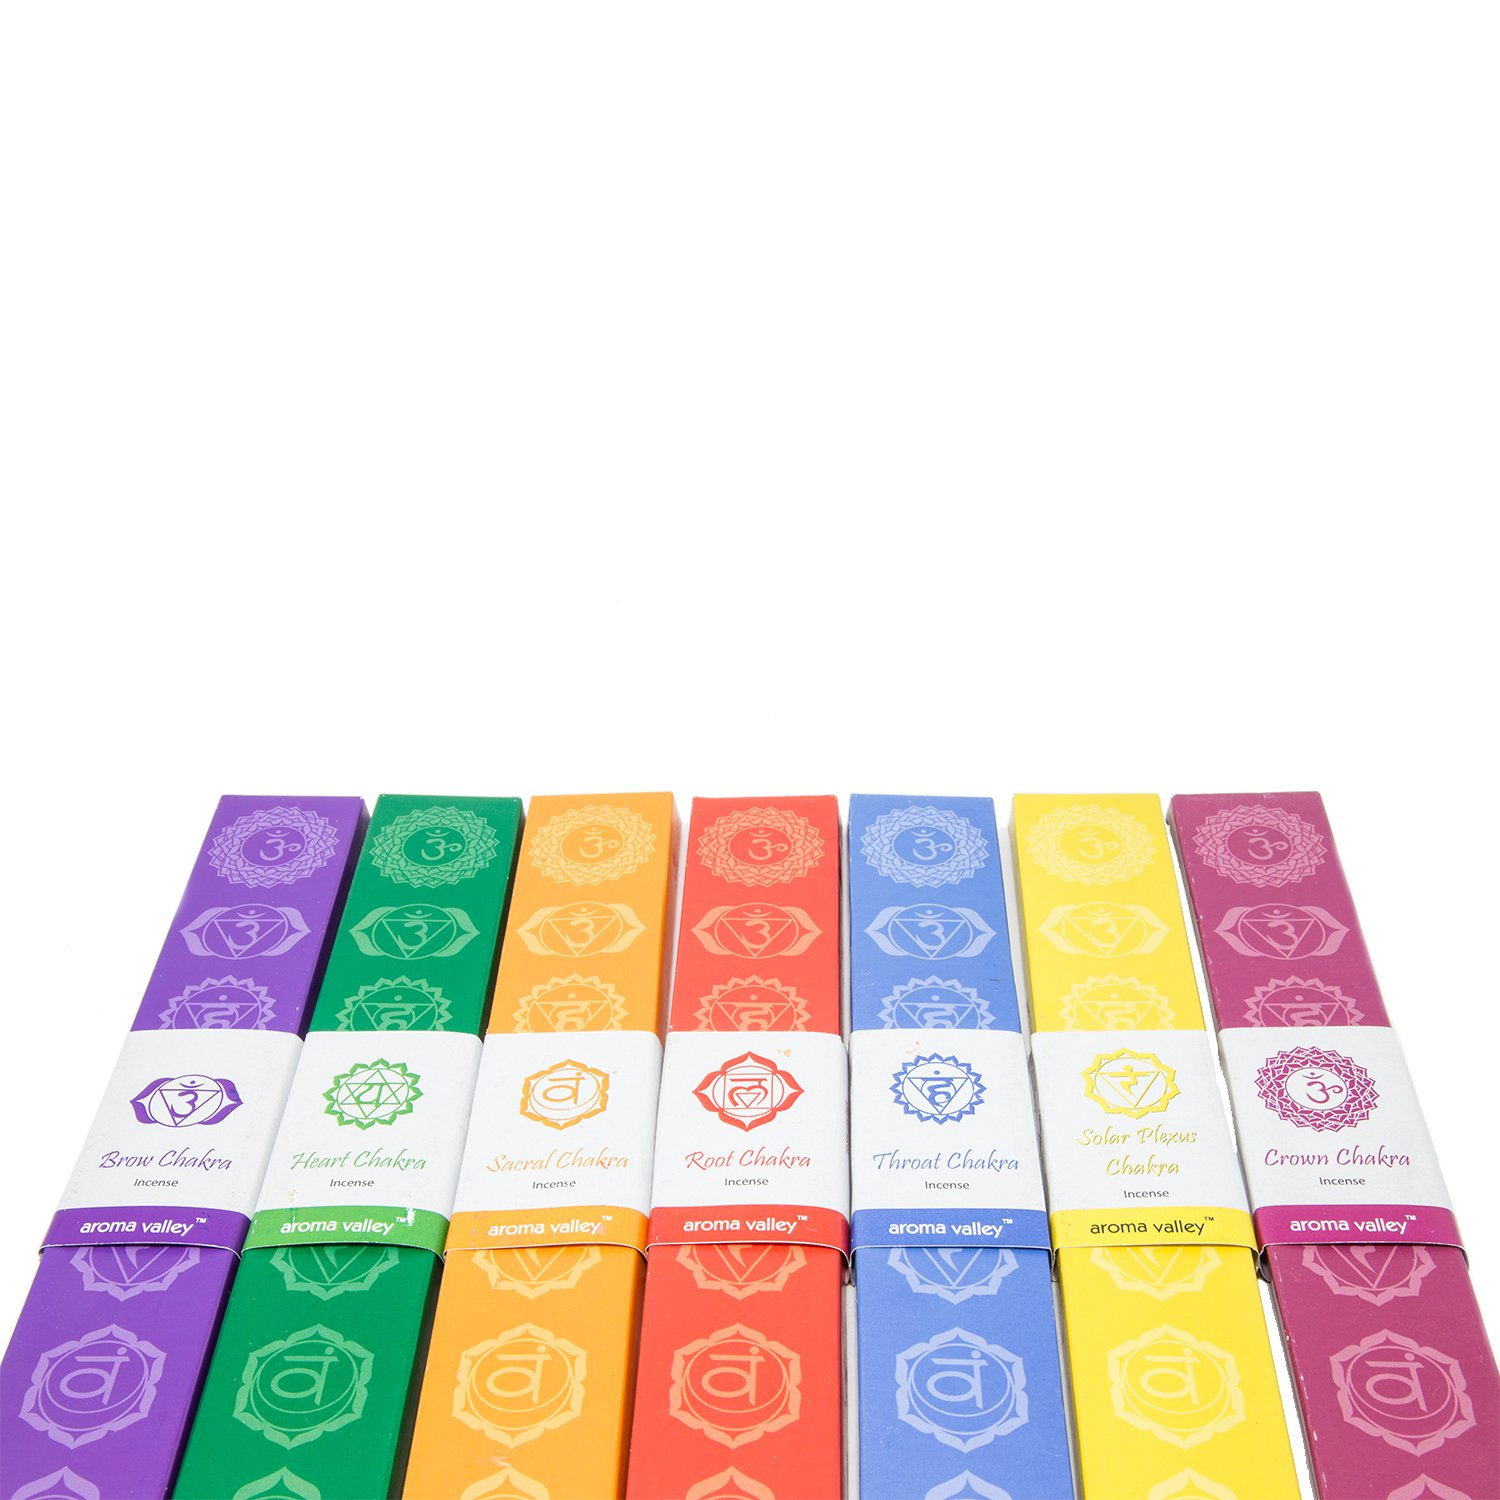 Eco Friendly Organic Handmade 7 Chakras Aroma Incense Wands 10 Incense Sticks in Each Pack Perfect for Meditation Relaxation Healing